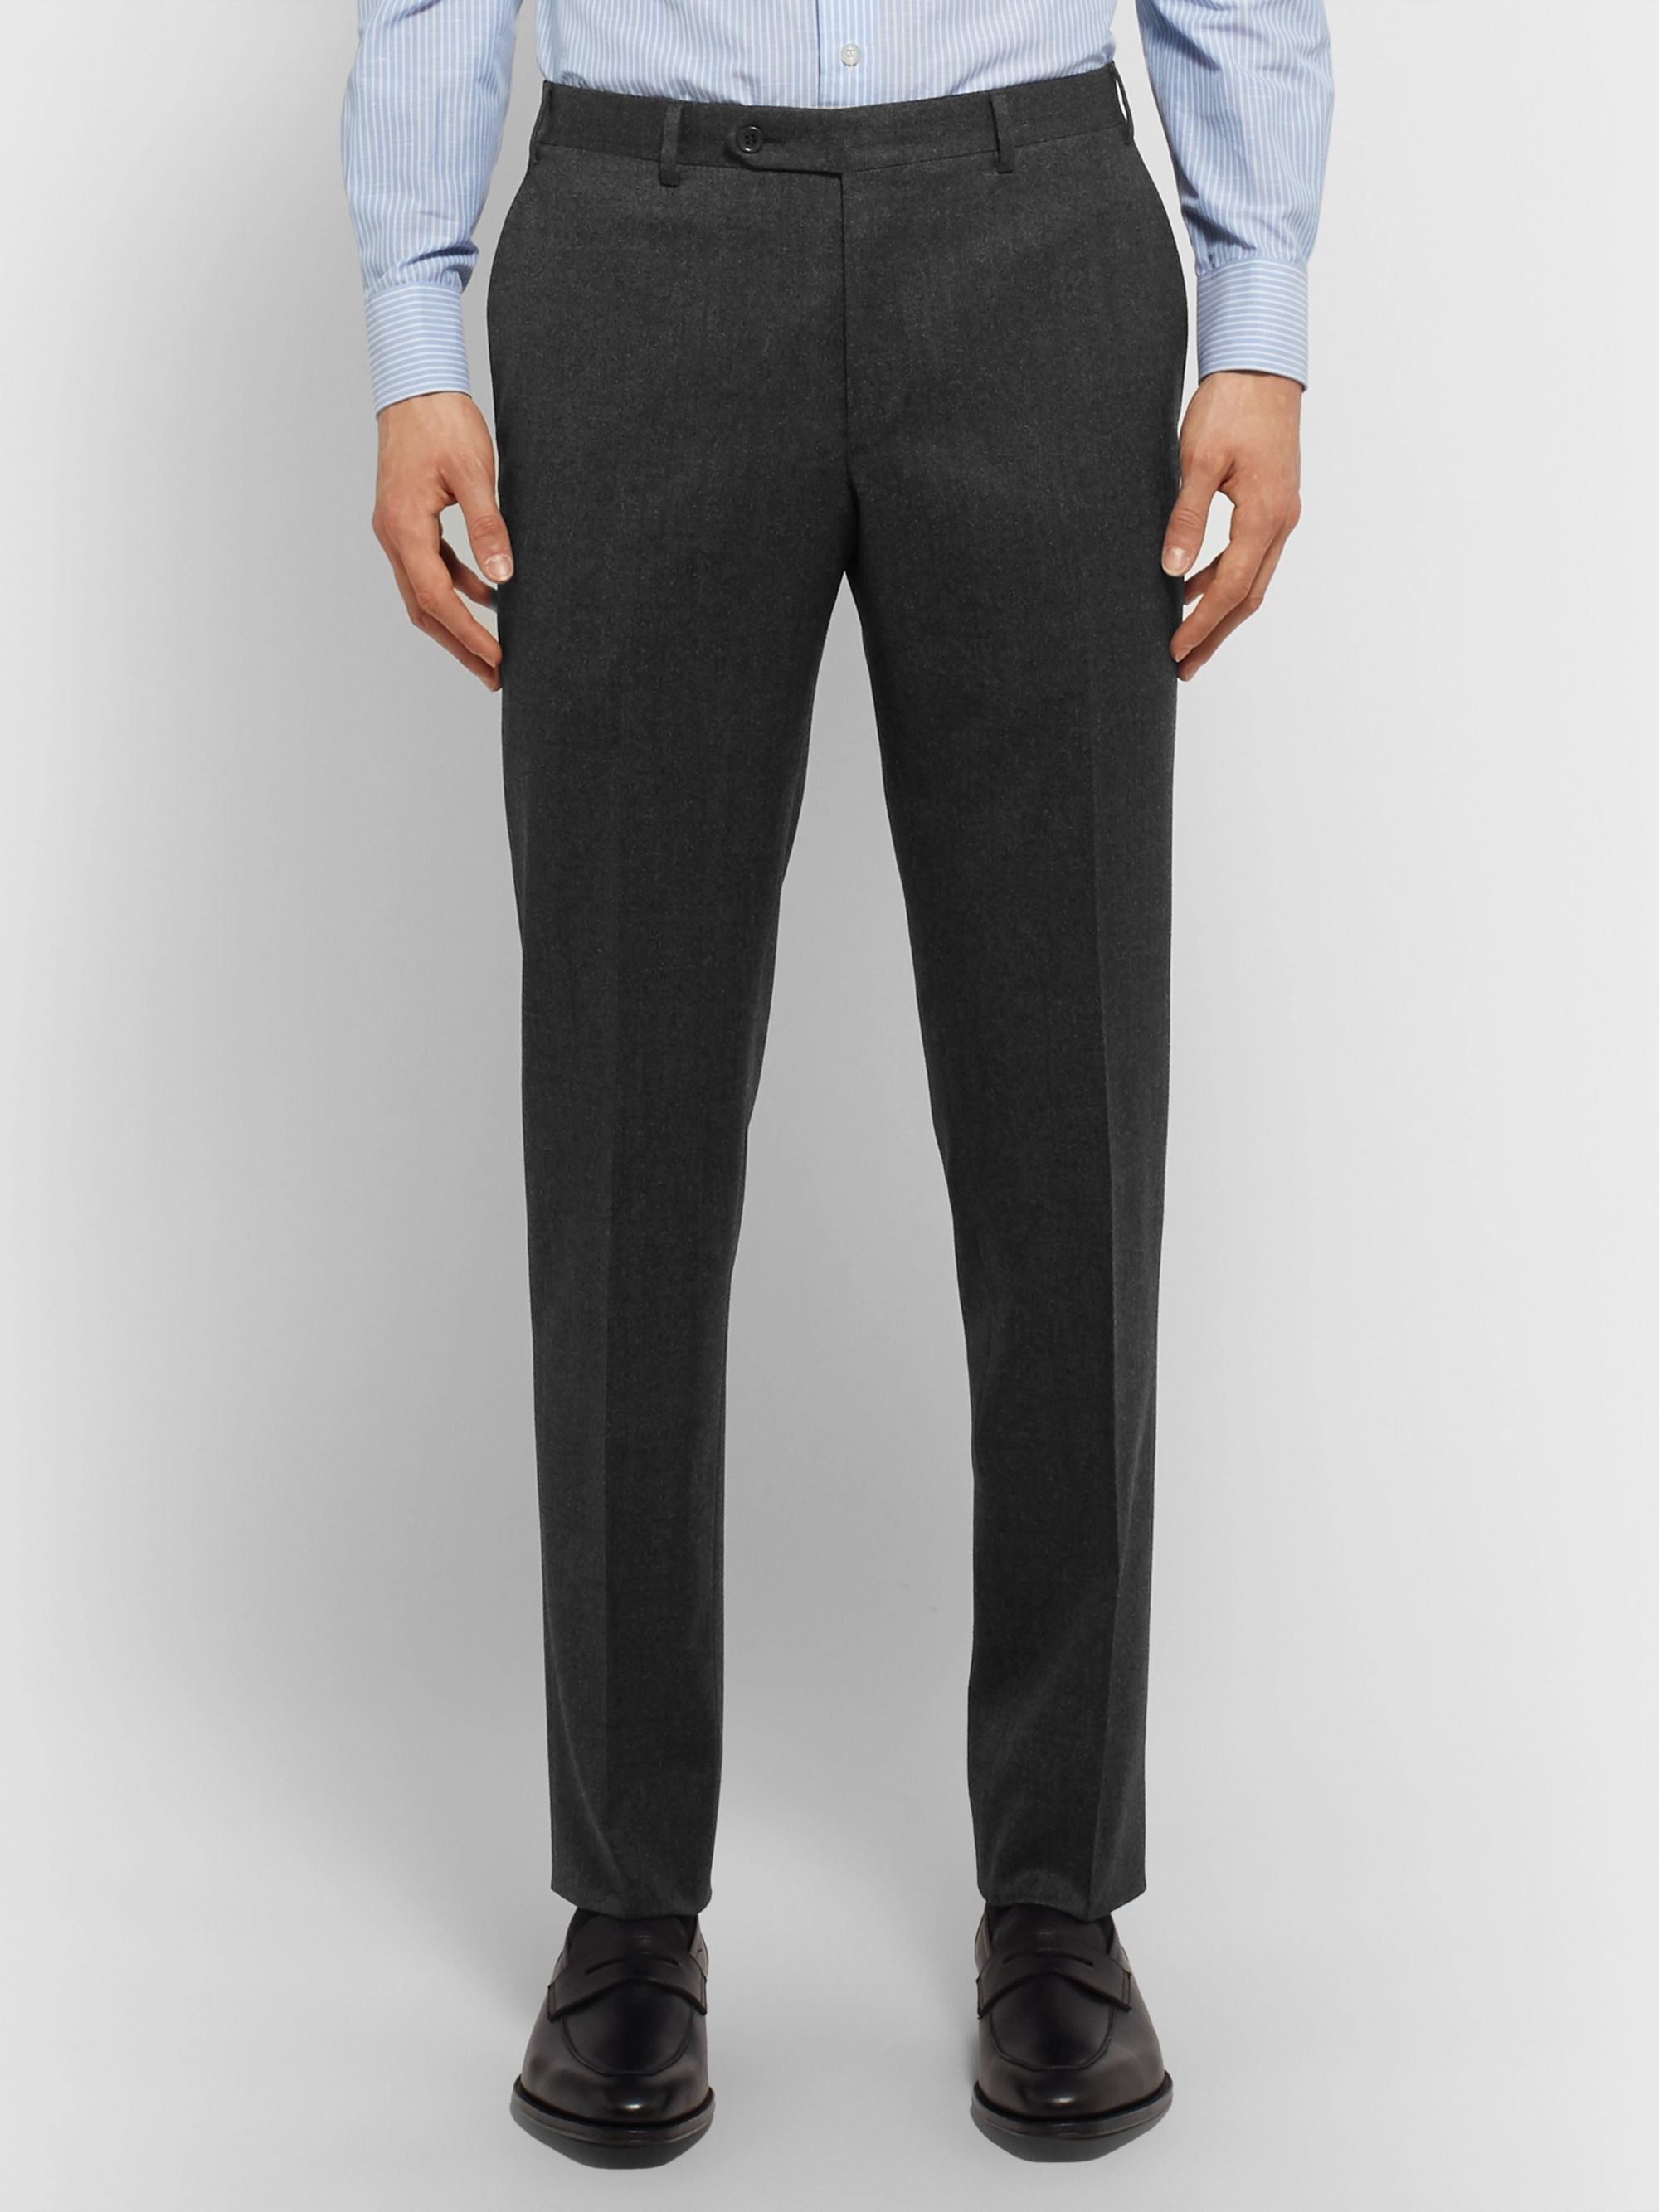 Canali Navy Super 120s Micro-Checked Wool Suit Trousers